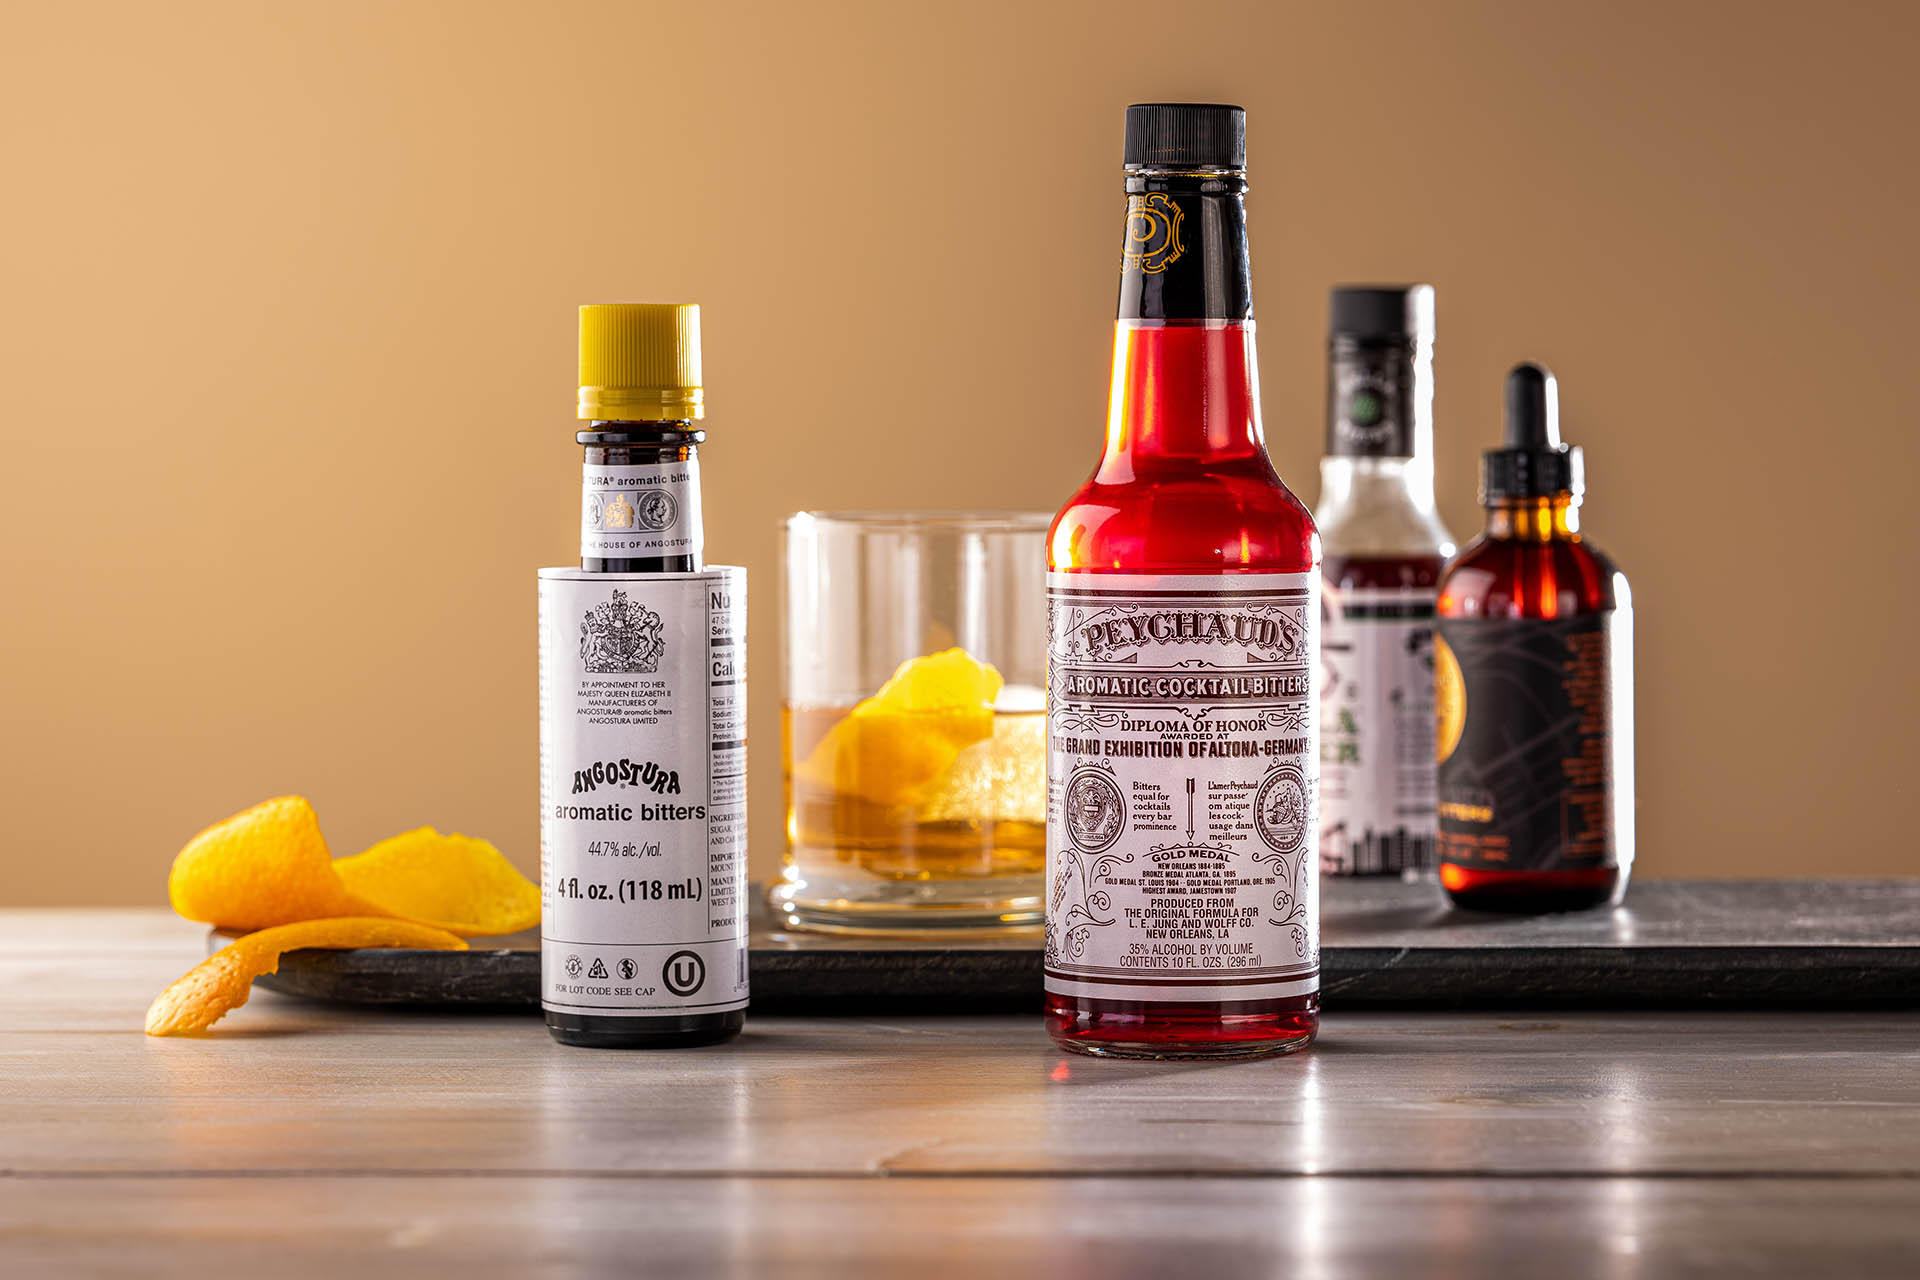 Celebrate International Whiskey Day With Angostura photo